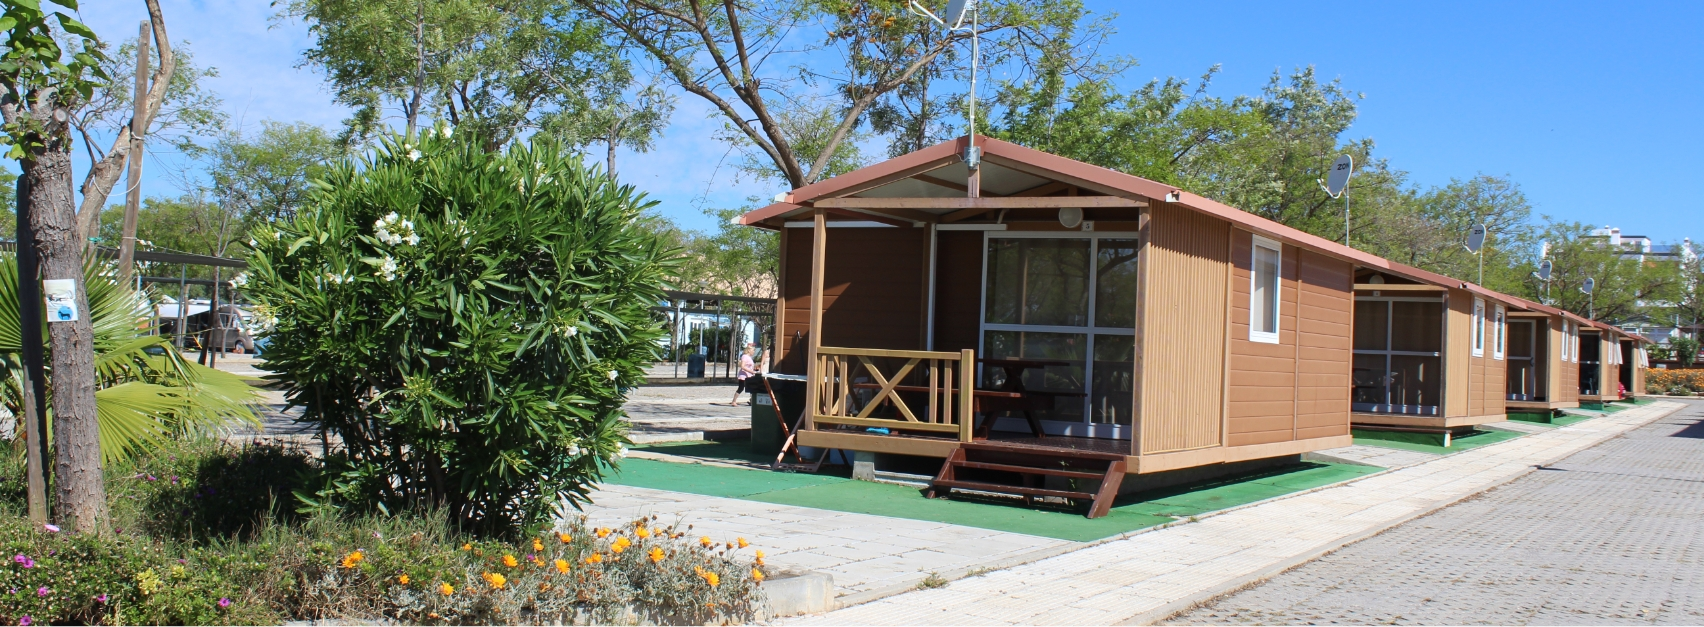 Camping Bungalows - Our offer of accommodation in Bungalows - Camping Ria Formosa in Algarve